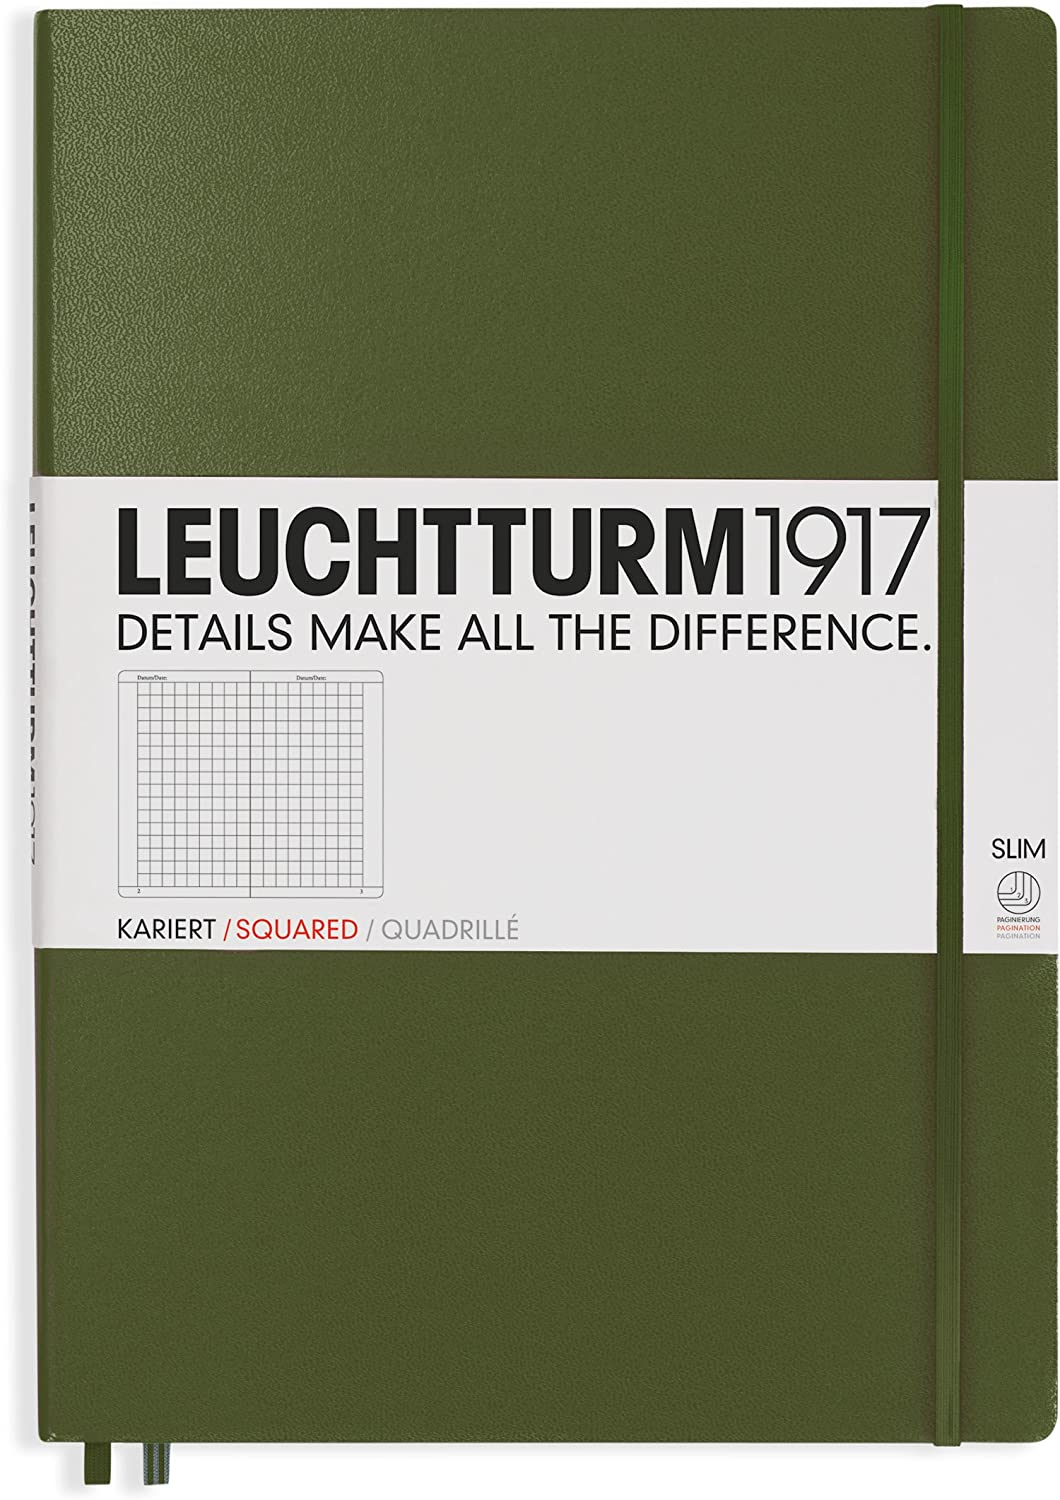 LEUCHTTURM1917 - Master Slim A4+ - Squared Hardcover Notebook (Army) - 123 Numbered Pages